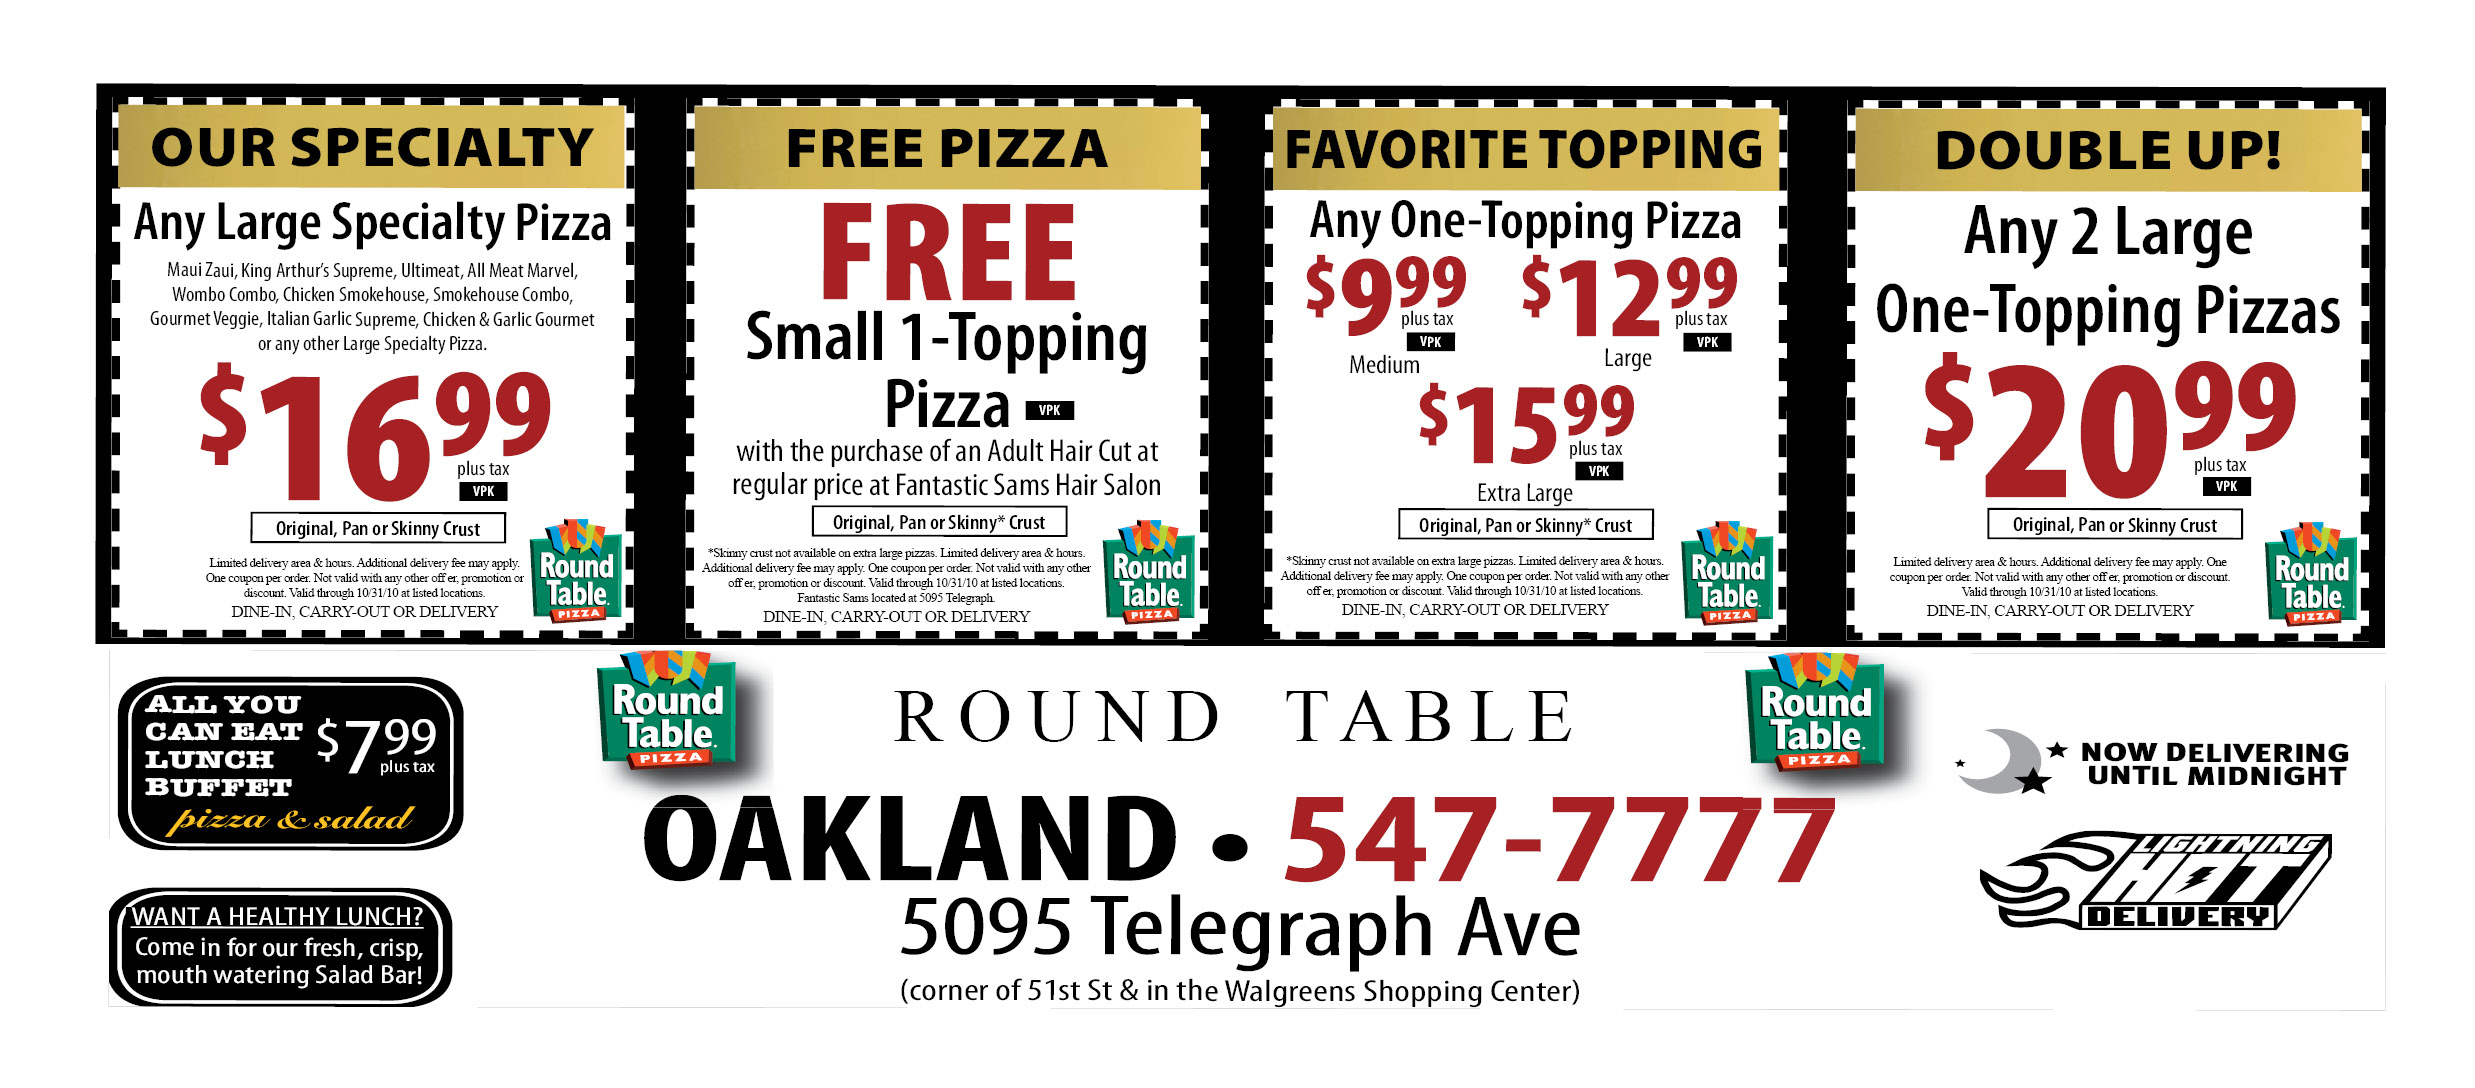 Fancy Round Table Printable Coupons In Stunning Home Decoration - Free Printable Round Table Pizza Coupons